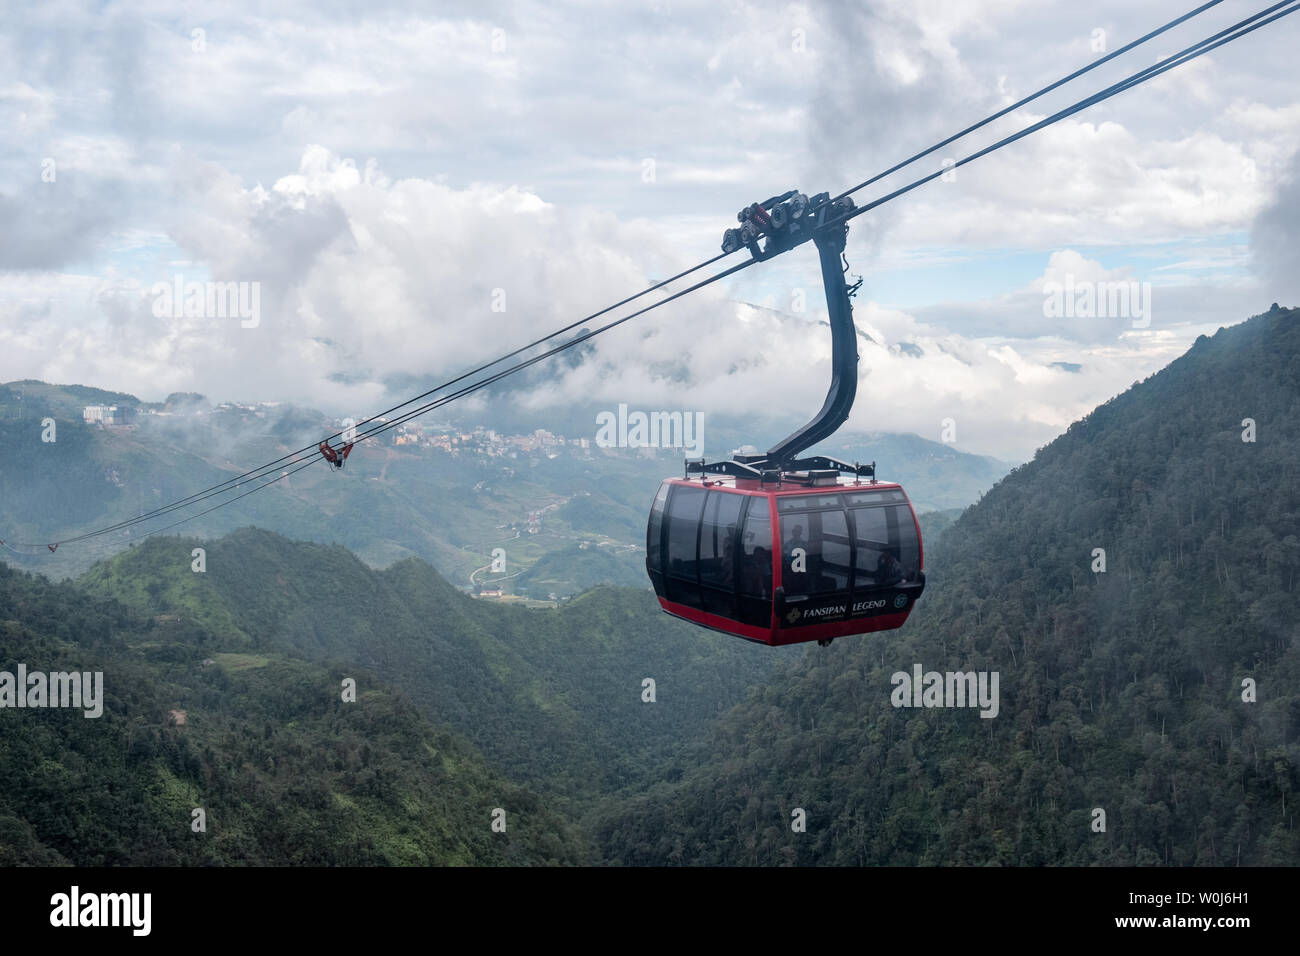 Sapa, Vietnam : Sep 08 2017 : Tourists sitting red cable car sightseeing Sapa village in valley through of fog - Stock Image